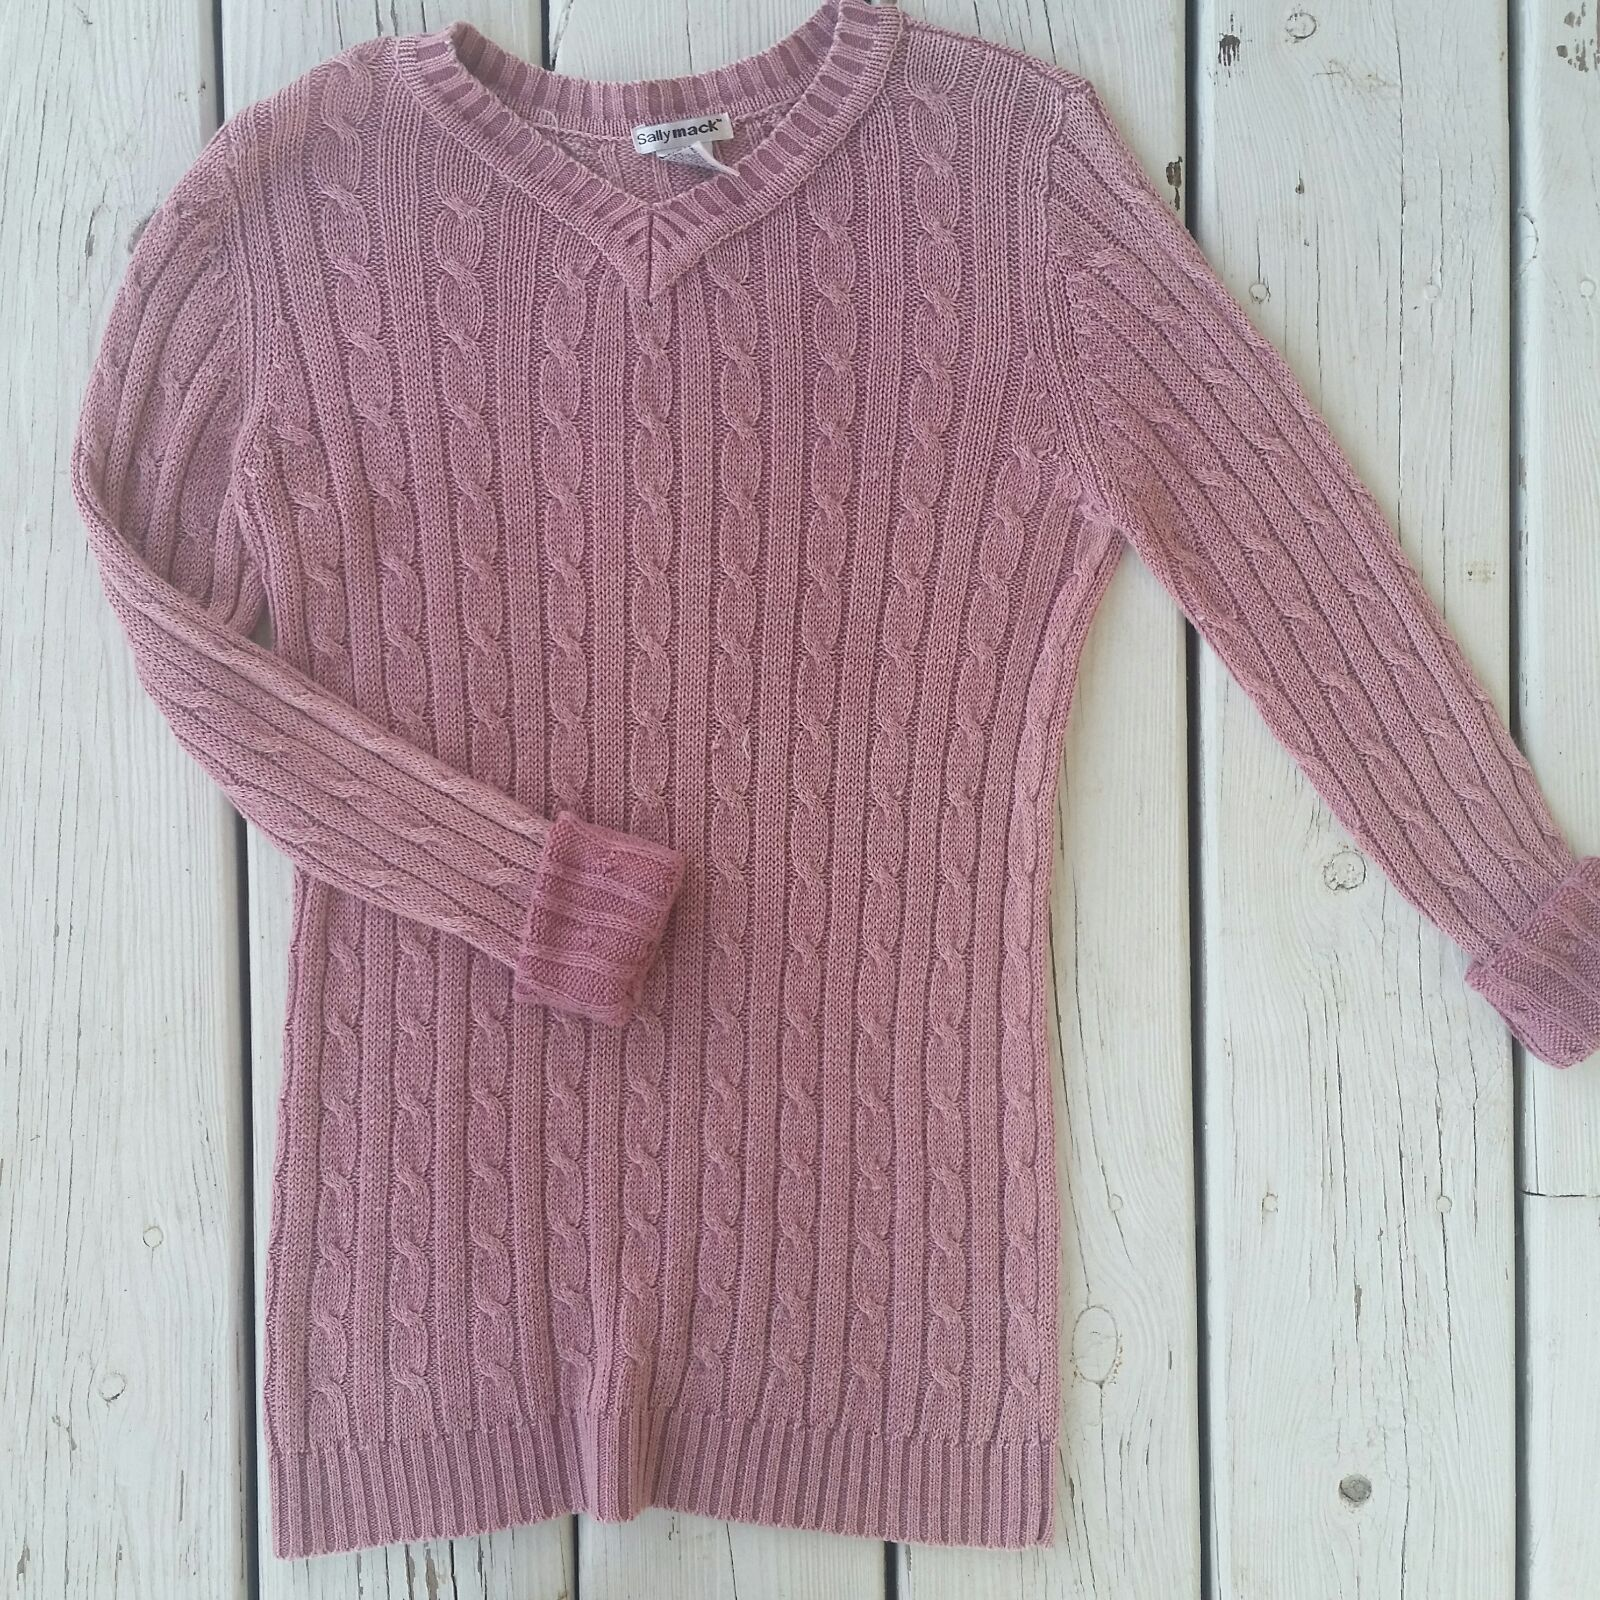 Mauve Pink Cable Knit Sweater - Mercari: BUY & SELL THINGS YOU LOVE